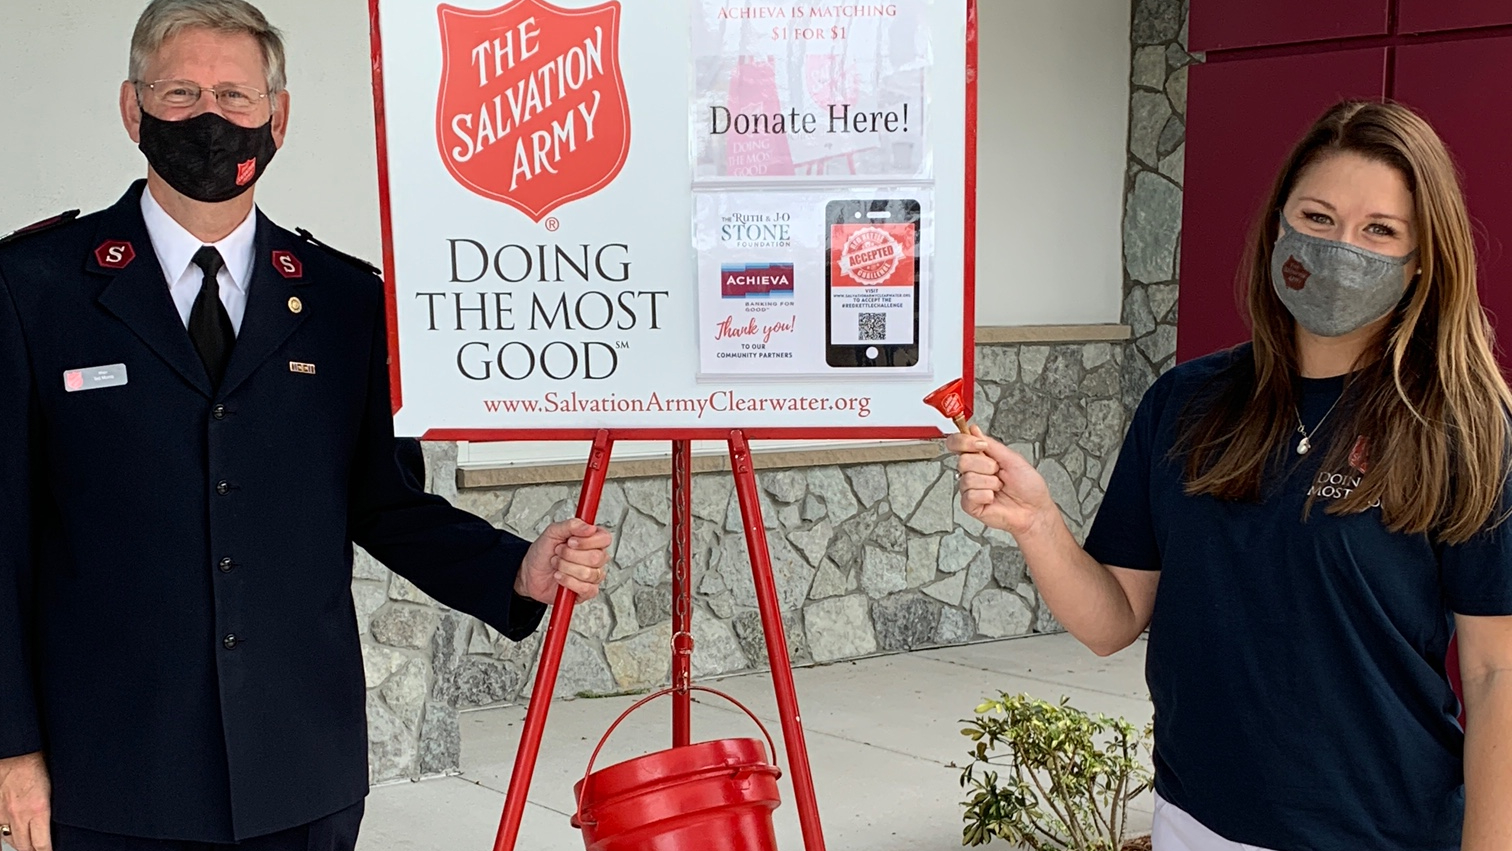 Weekend anchor Erin Murray was a bell ringer for the Salvation Army Red Kettle campaign sponsored by Achieva.  She was at the Achieva location in Palm Harbor.